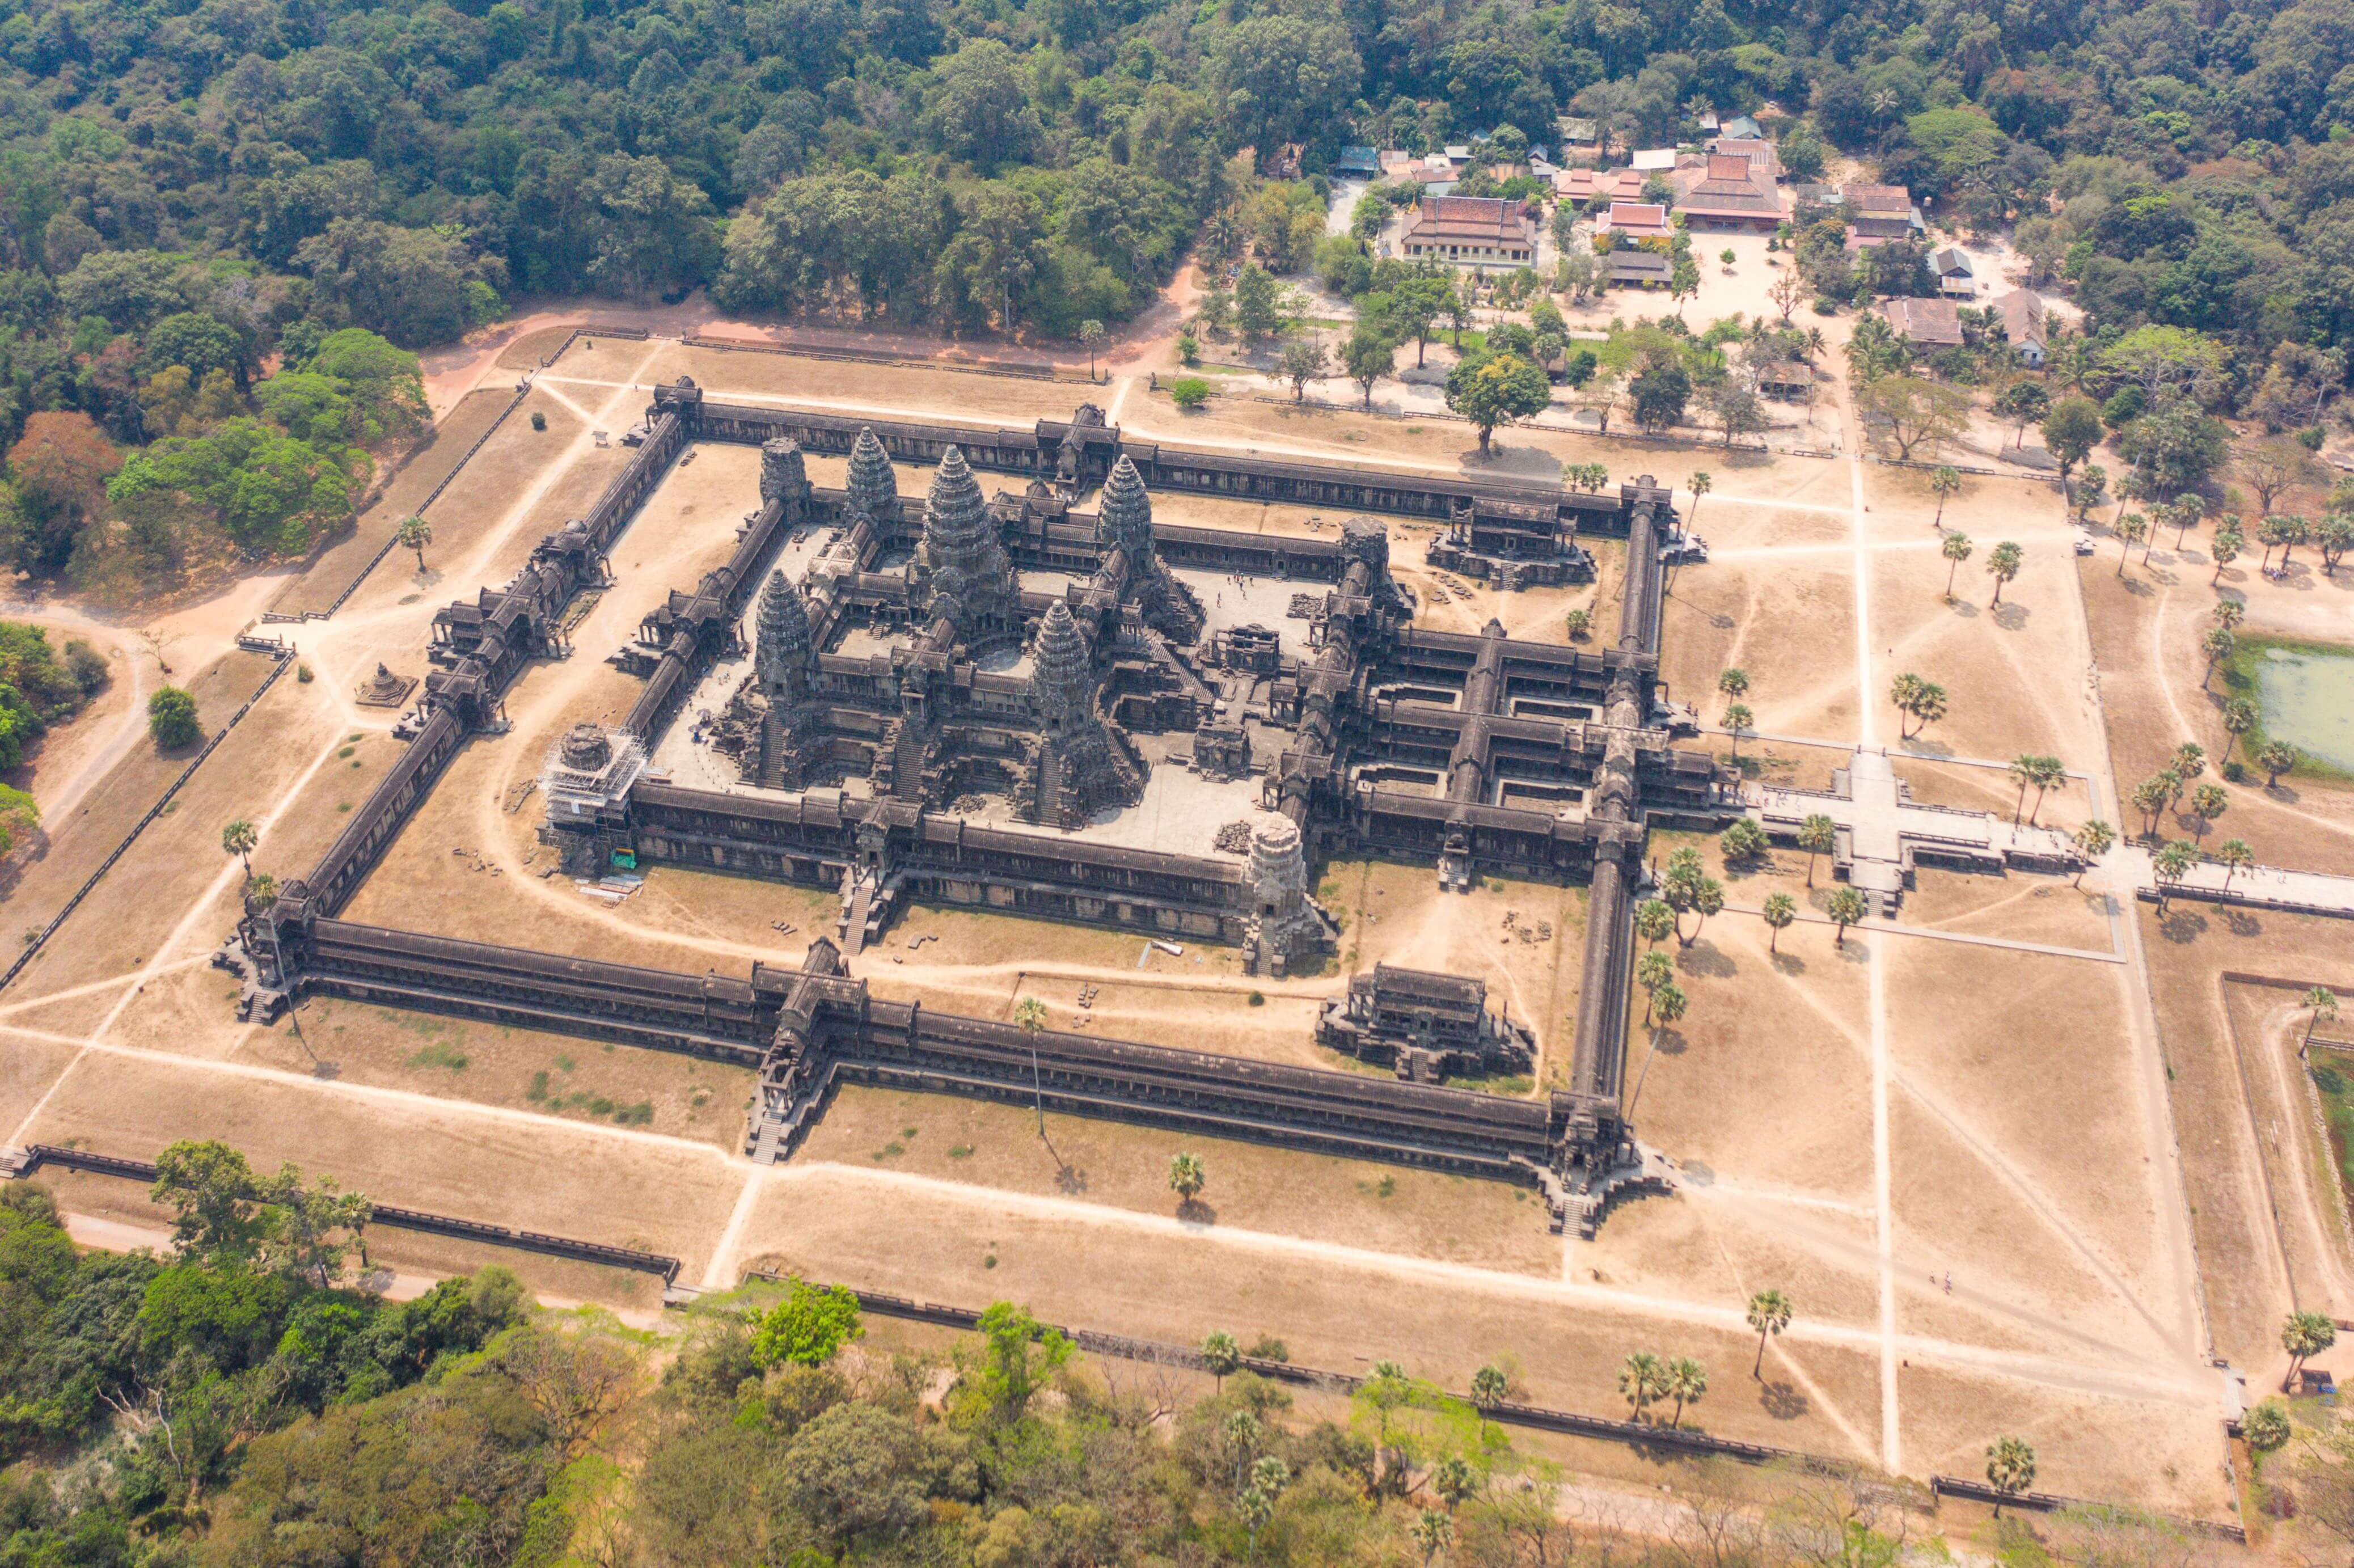 Angkor Wat in Cambodia is the world's largest religious monument by land area.